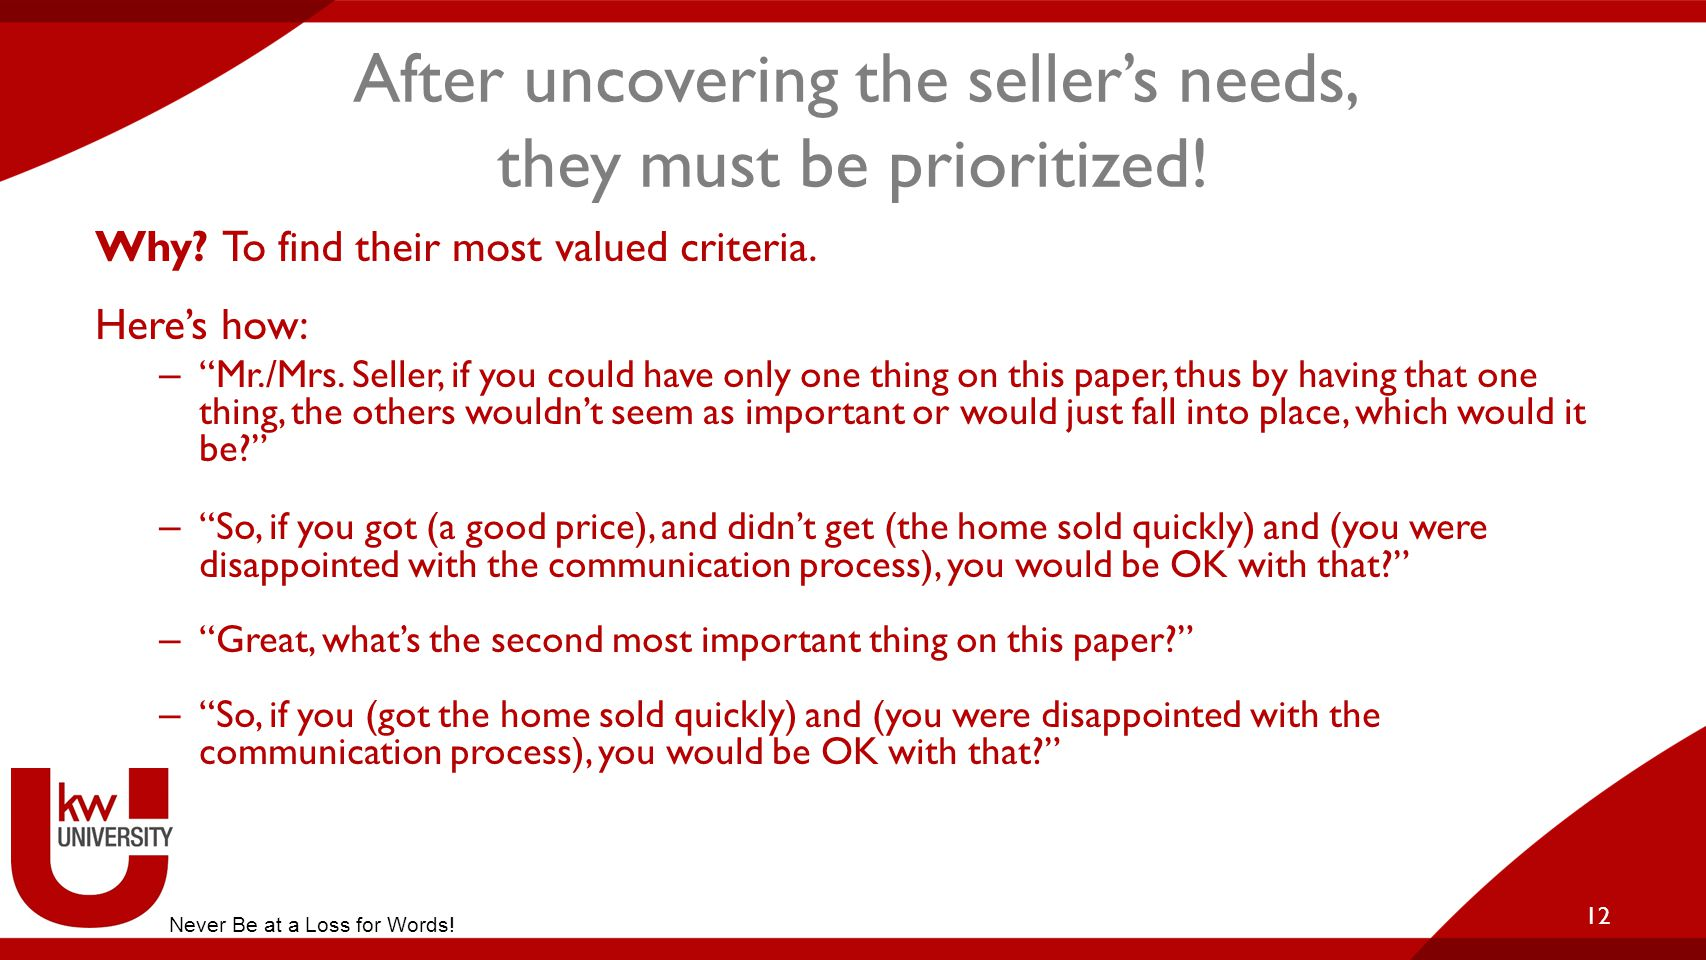 After uncovering the seller's needs, they must be prioritized!